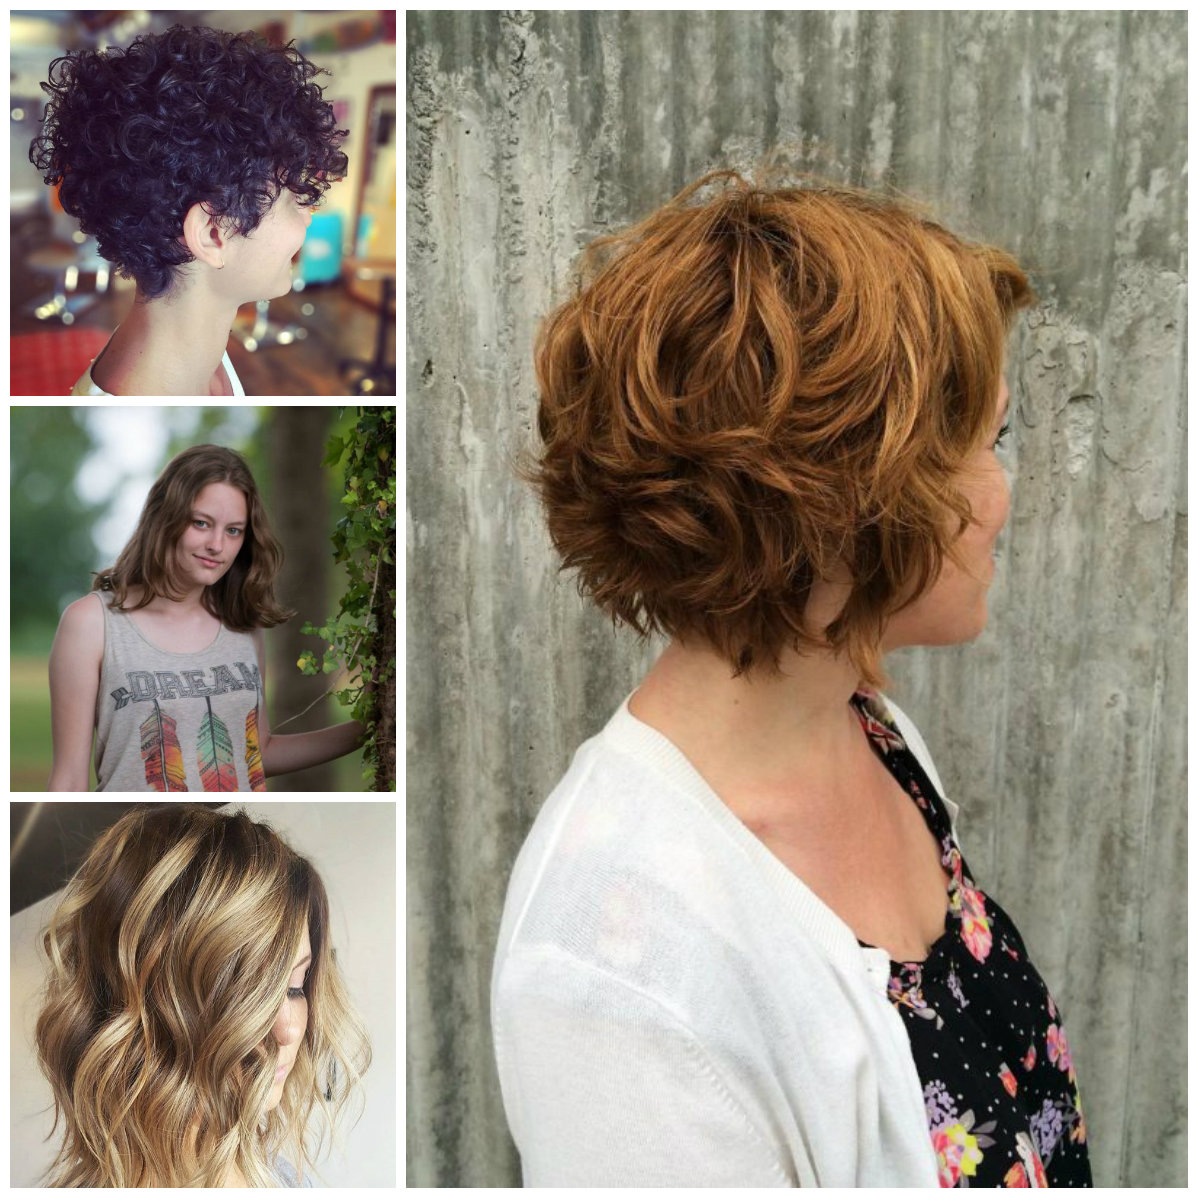 Stylish Short Wavy Hairstyle For 2017 2019 Haircuts